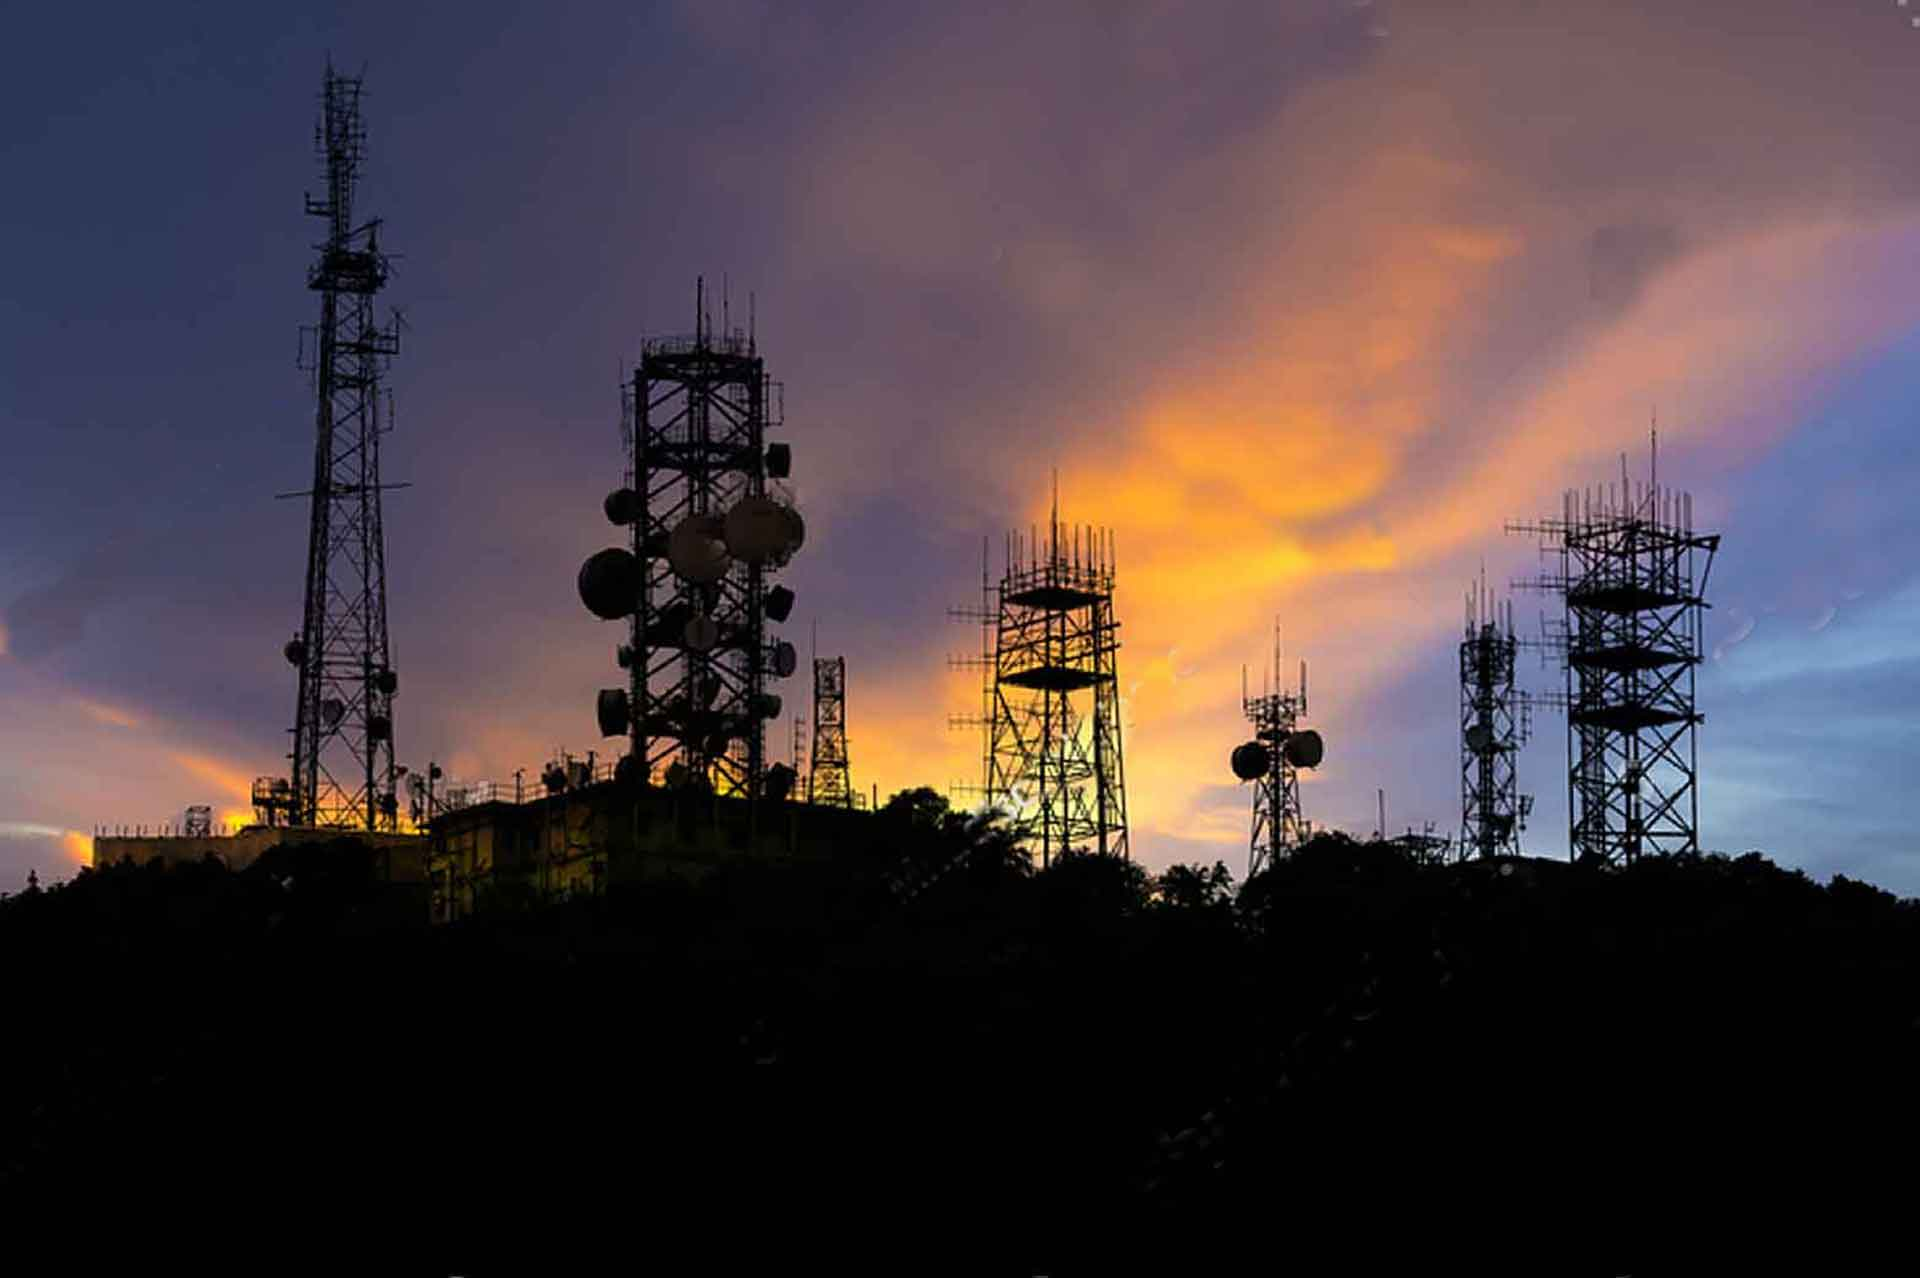 Tower Installs | Reliable Telecom Supply | Telecom Supply and Reclamation